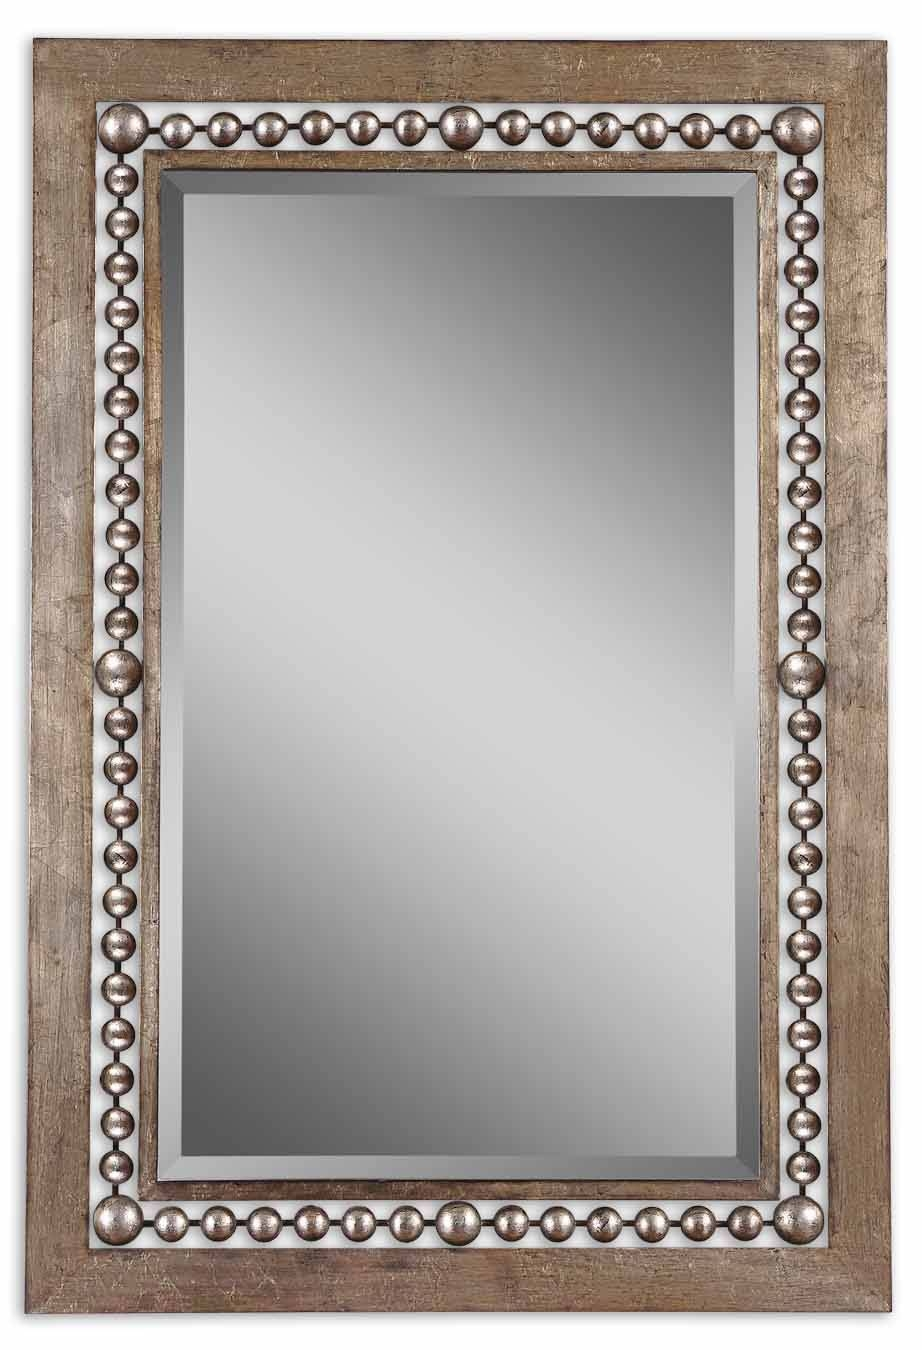 Uttermost Fidda Antique Silver Mirror 13724 intended for Silver Mirrors (Image 23 of 25)